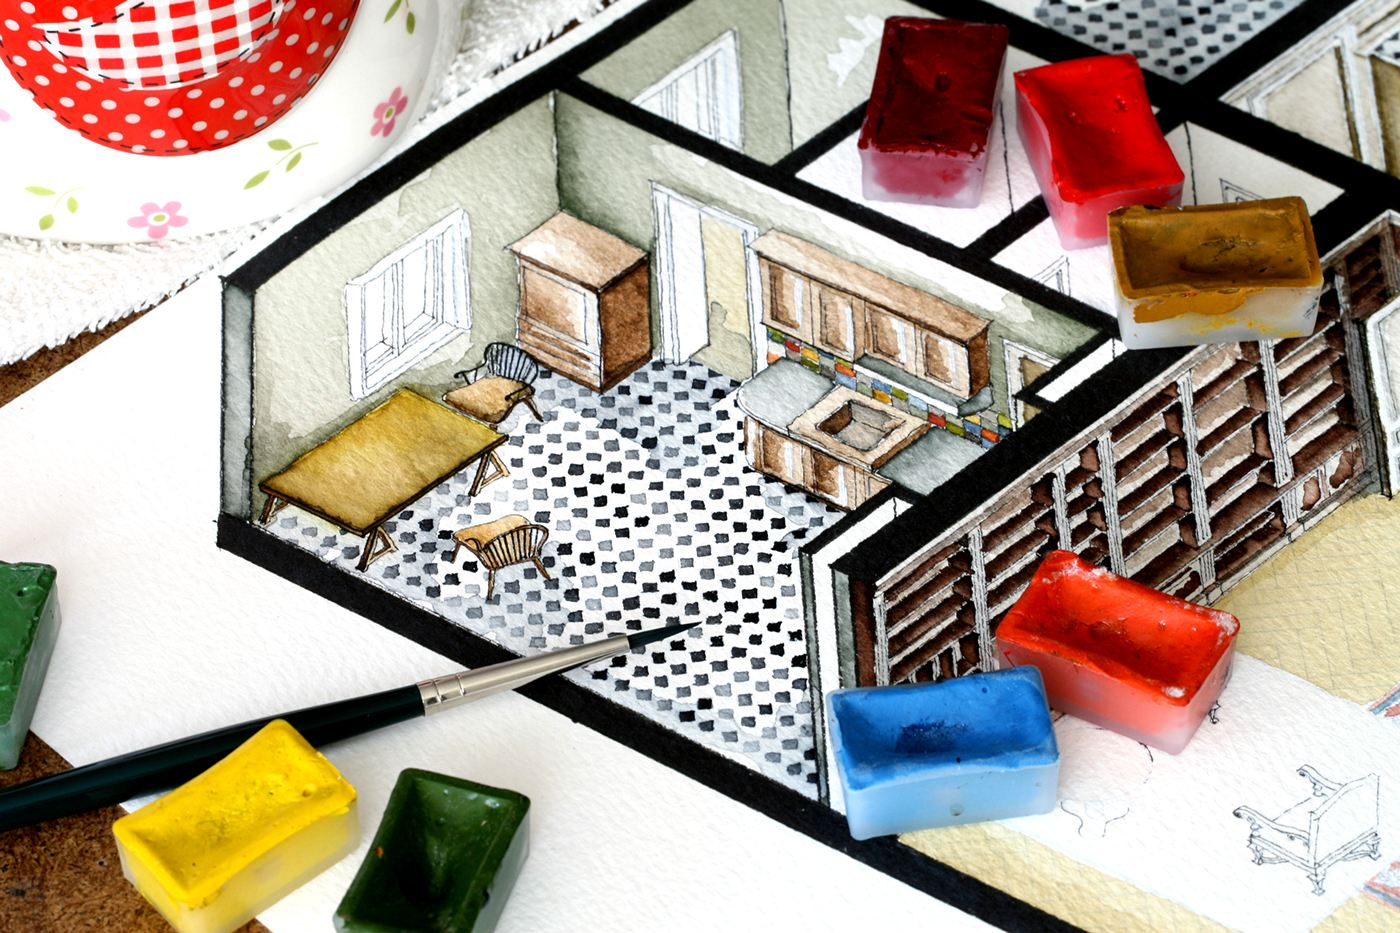 Architectural Paintings From Movies - Watercolor floorplans from recent television shows and films